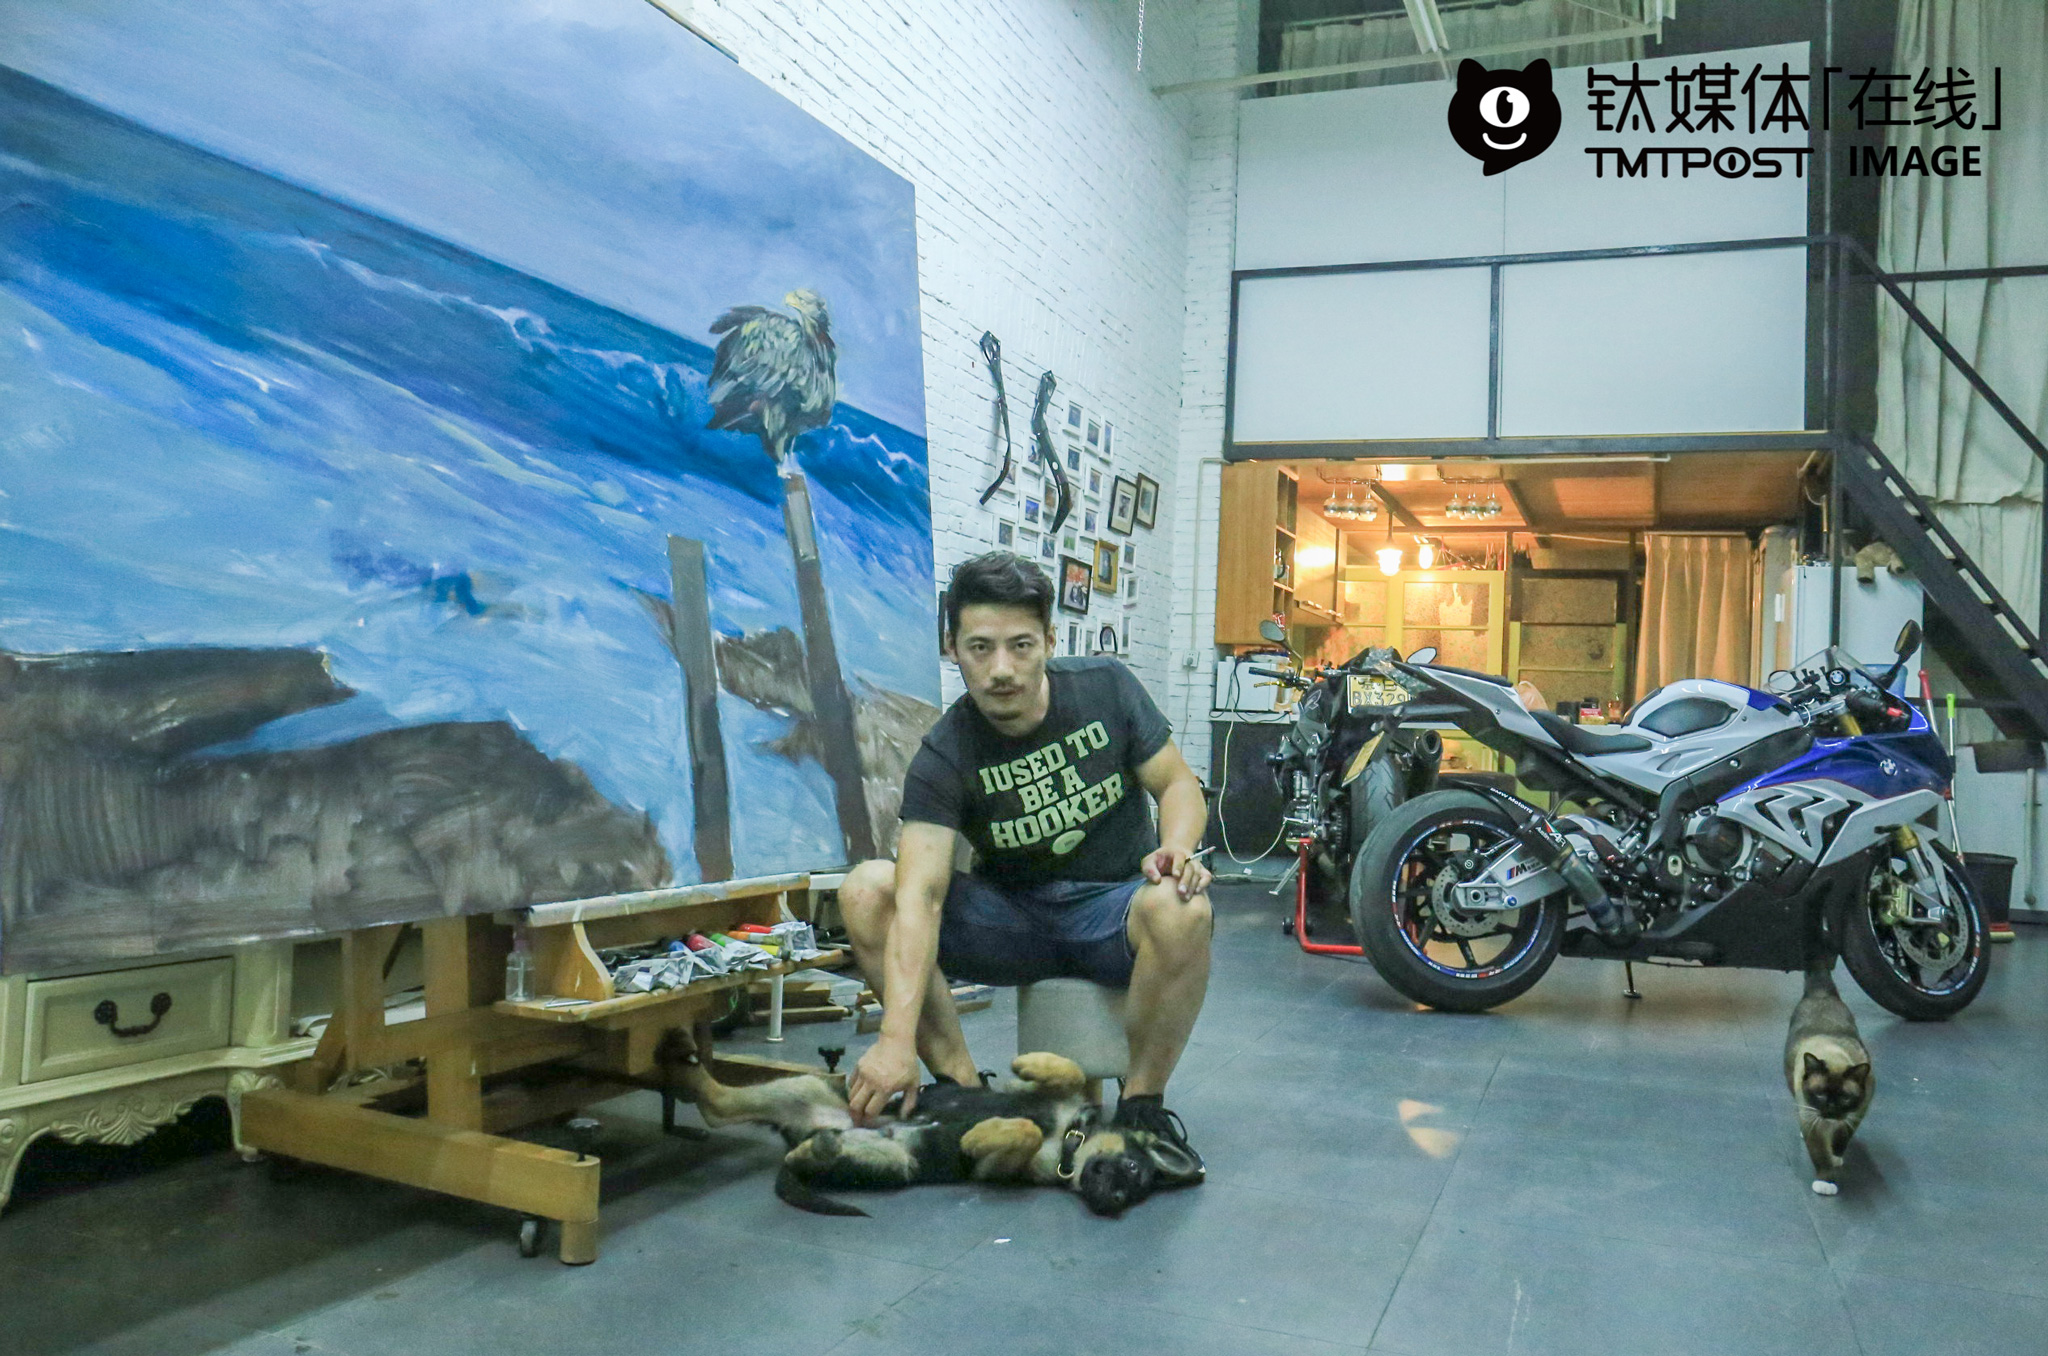 "Xin Zhihua was having a rest in his own art studio. After graduating from the Central Academy of Fine Arts, he became a professional painter and art work dealer. For him, he needs to stay quiet when painting, but get crazy when riding motorcycles. To some degree, riding motorcycles helped him relax himself. ""Deep down, however, I can get really crazy when painting, but stay very quite when riding motorcycles,"" he explained."